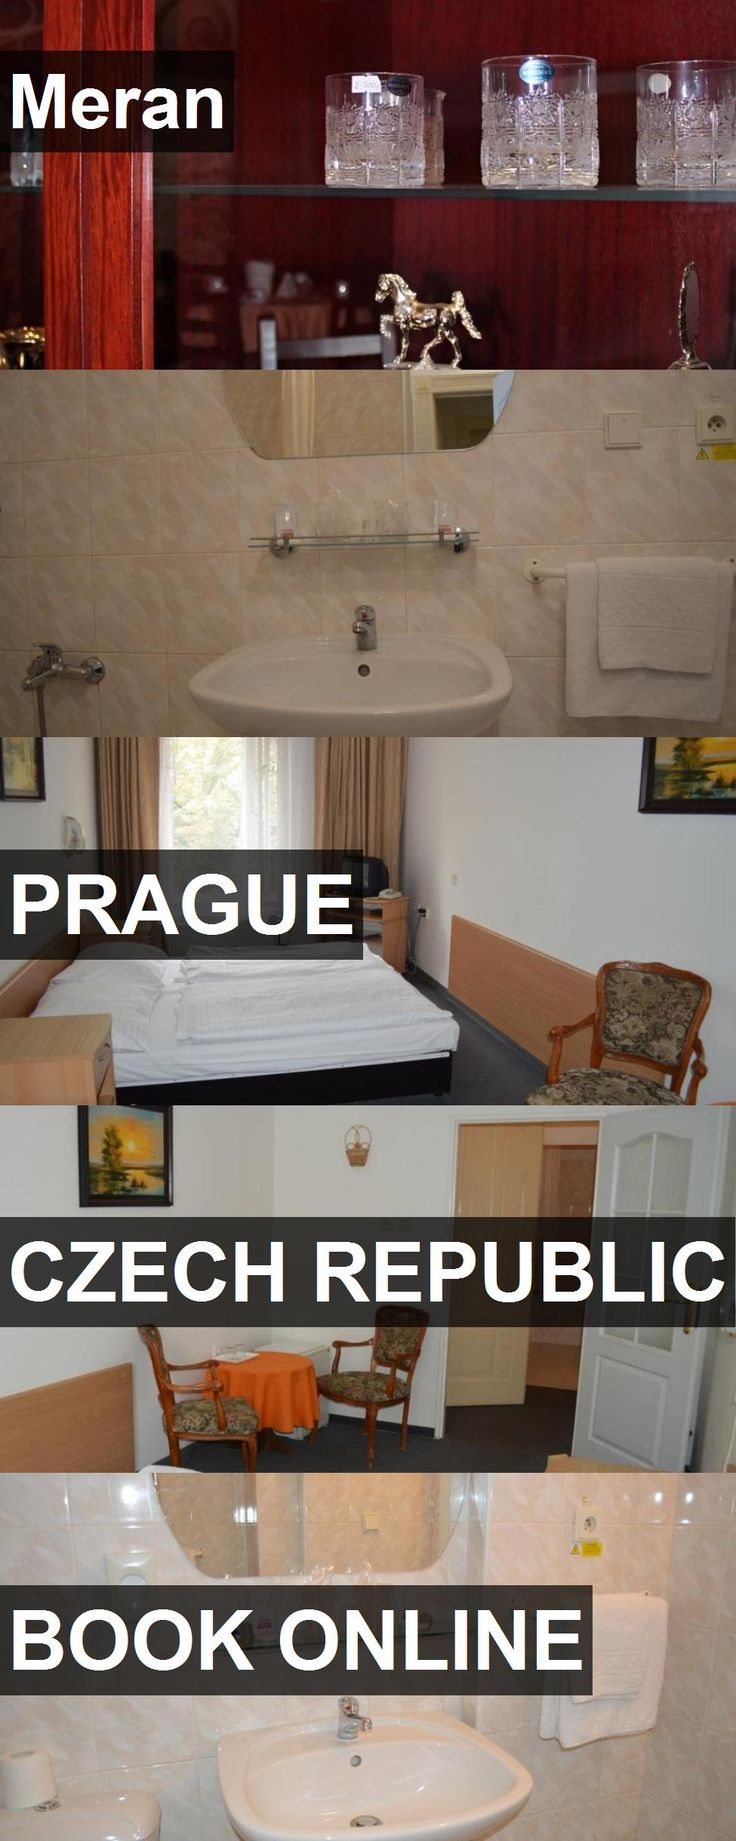 Hotel Meran in Prague, Czech Republic. For more information, photos, reviews and best prices please follow the link. #CzechRepublic #Prague #travel #vacation #hotel